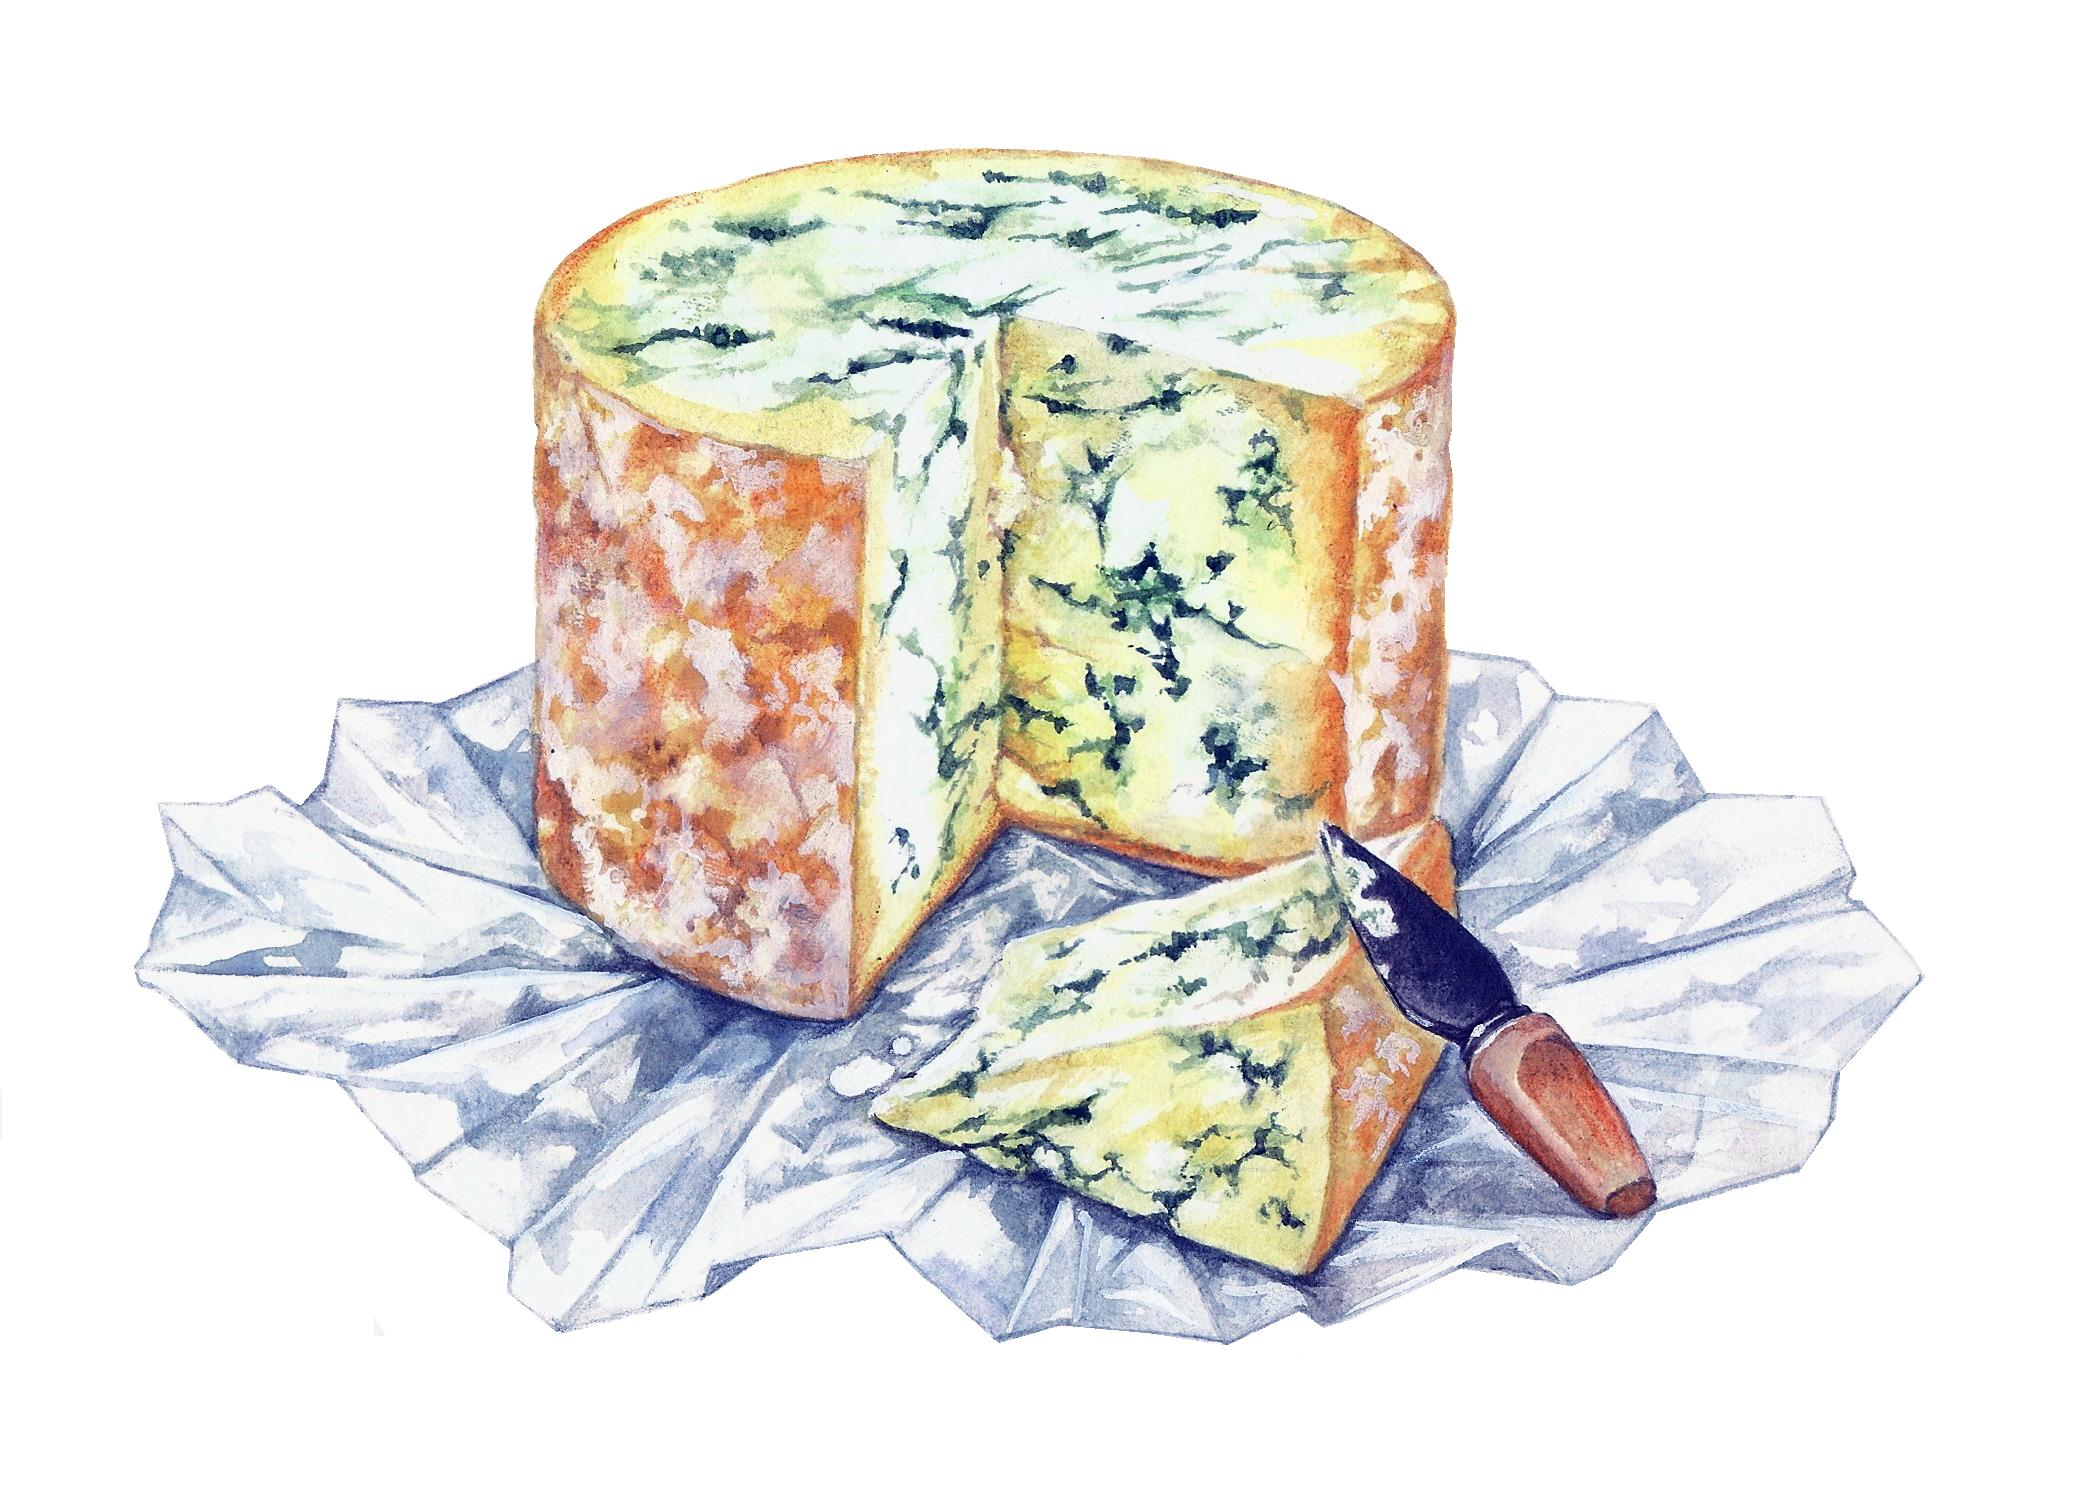 Stilton Artwork